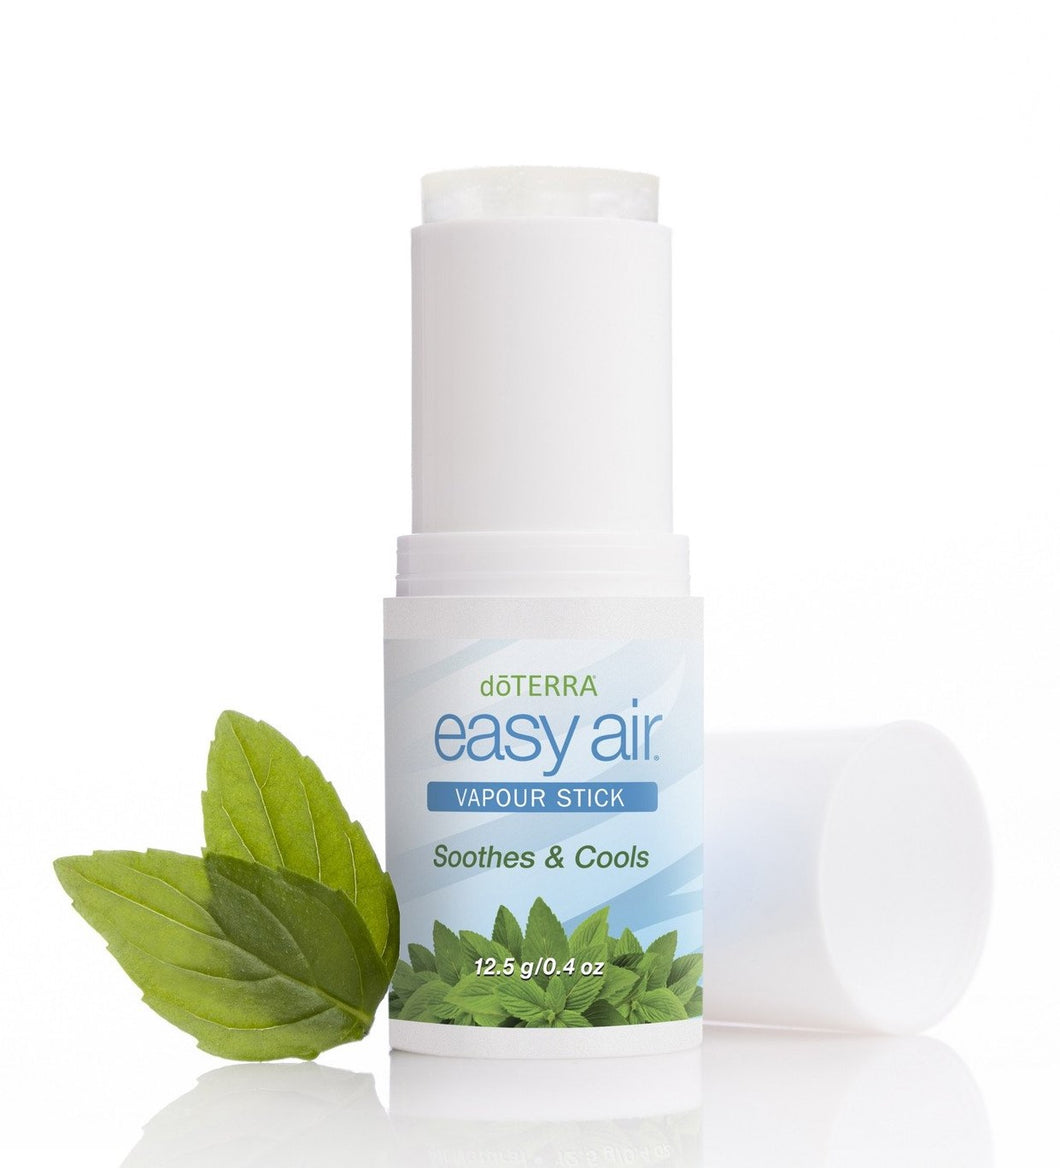 Easy Air Vapour Stick